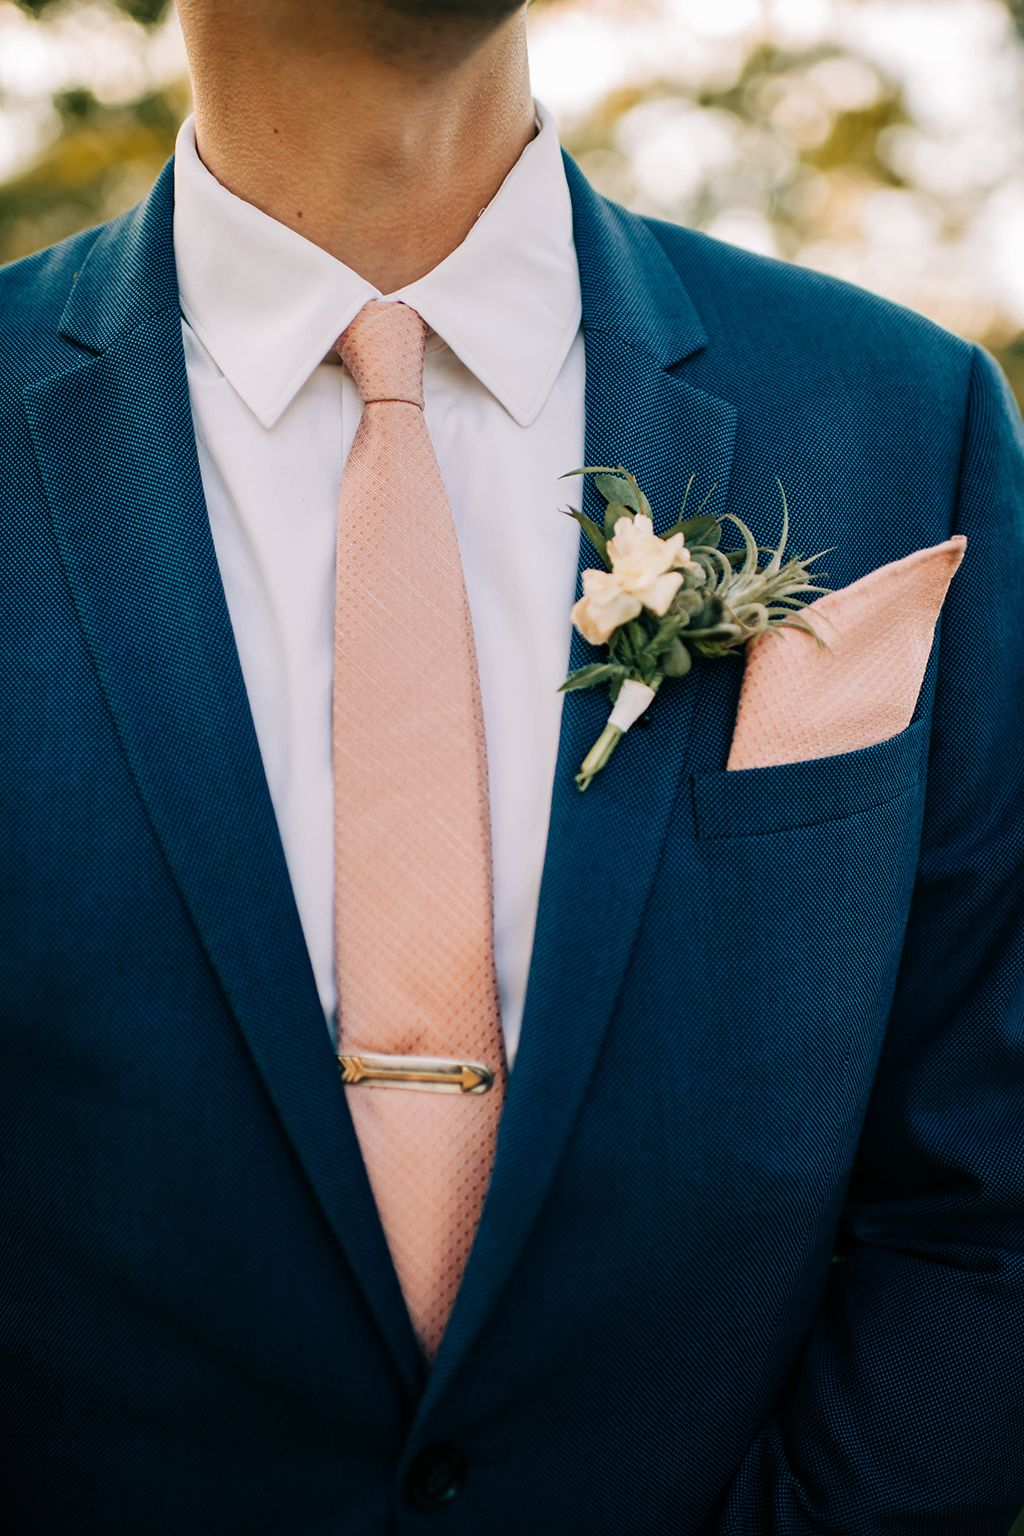 Blue suit with pink tie and tie clip – groom's attire · Rock n Roll Bride